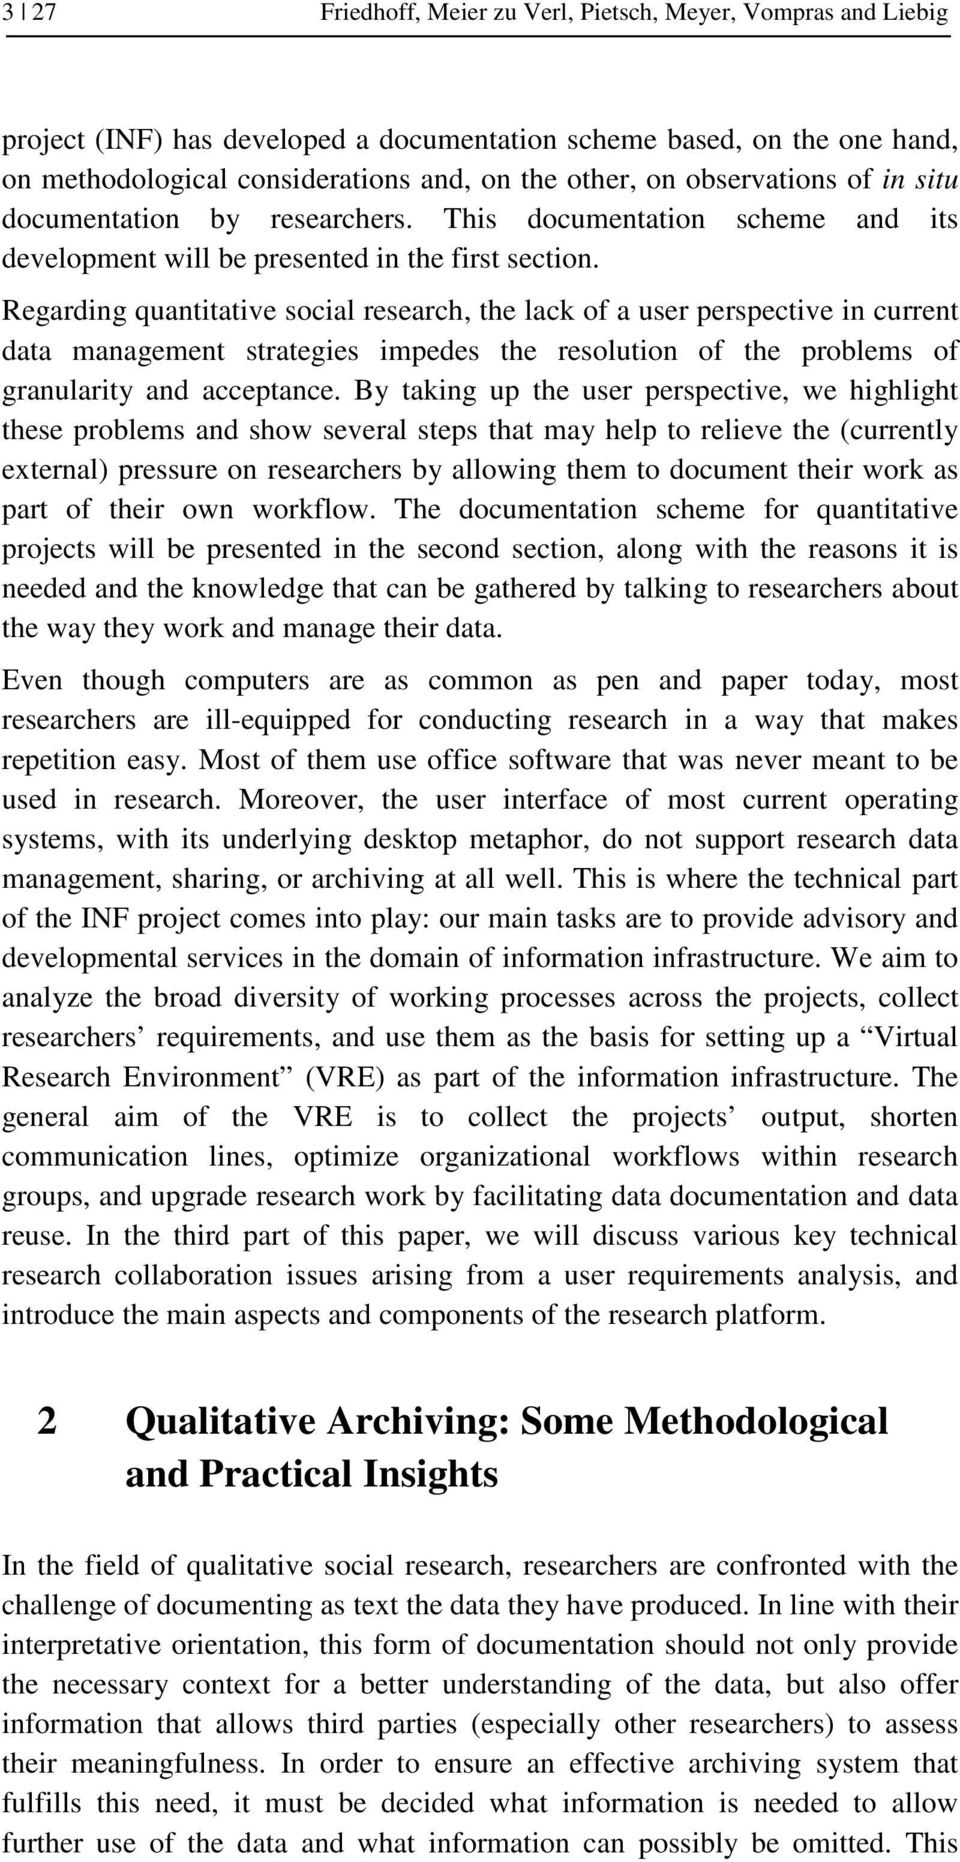 Regarding quantitative social research, the lack of a user perspective in current data management strategies impedes the resolution of the problems of granularity and acceptance.